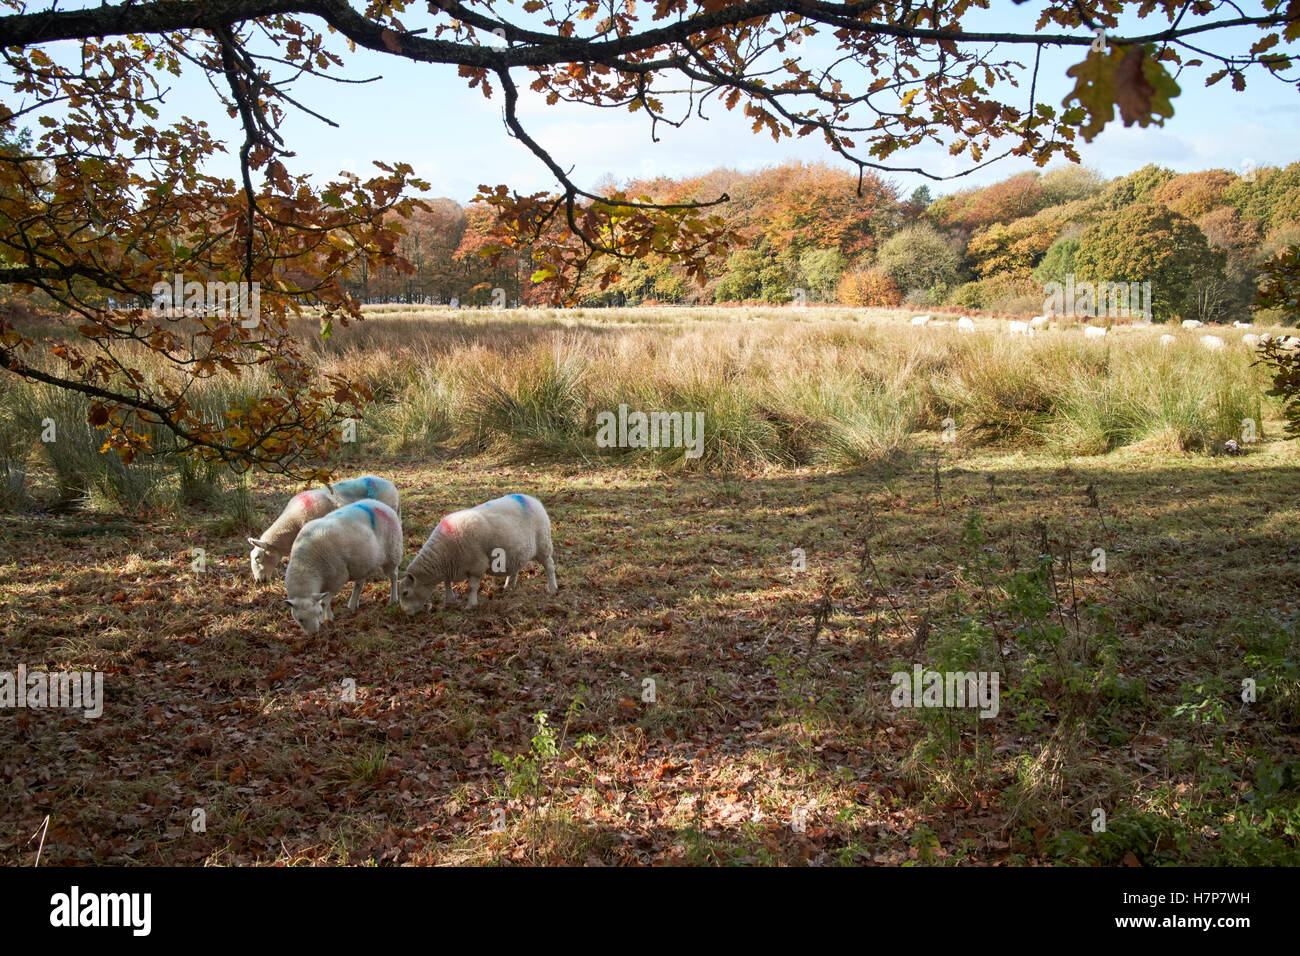 flock of sheep in rough grassland parkland in chorley lancashire uk - Stock Image